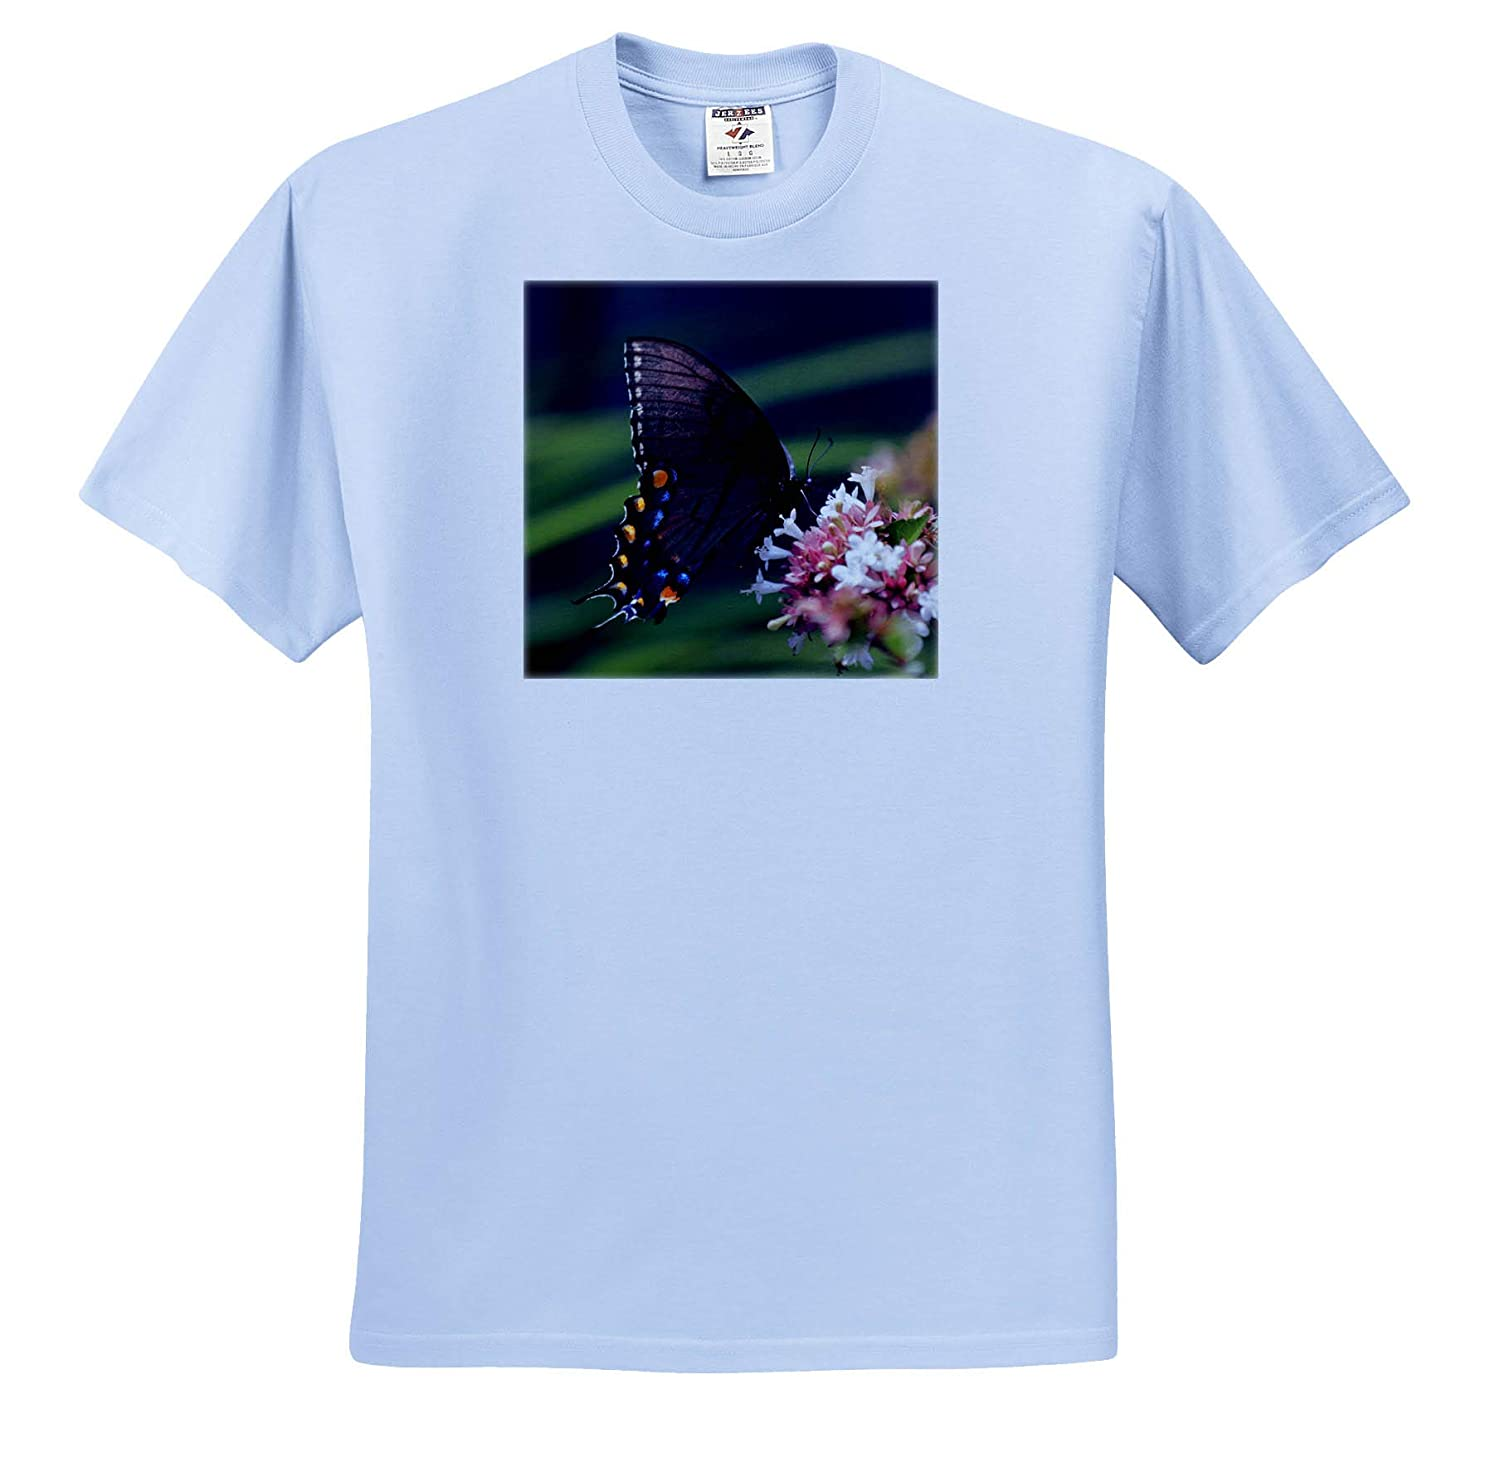 Nature - T-Shirts Photo of a Black Swallowtail Butterfly Pollinating an abelia Flower 3dRose Stamp City